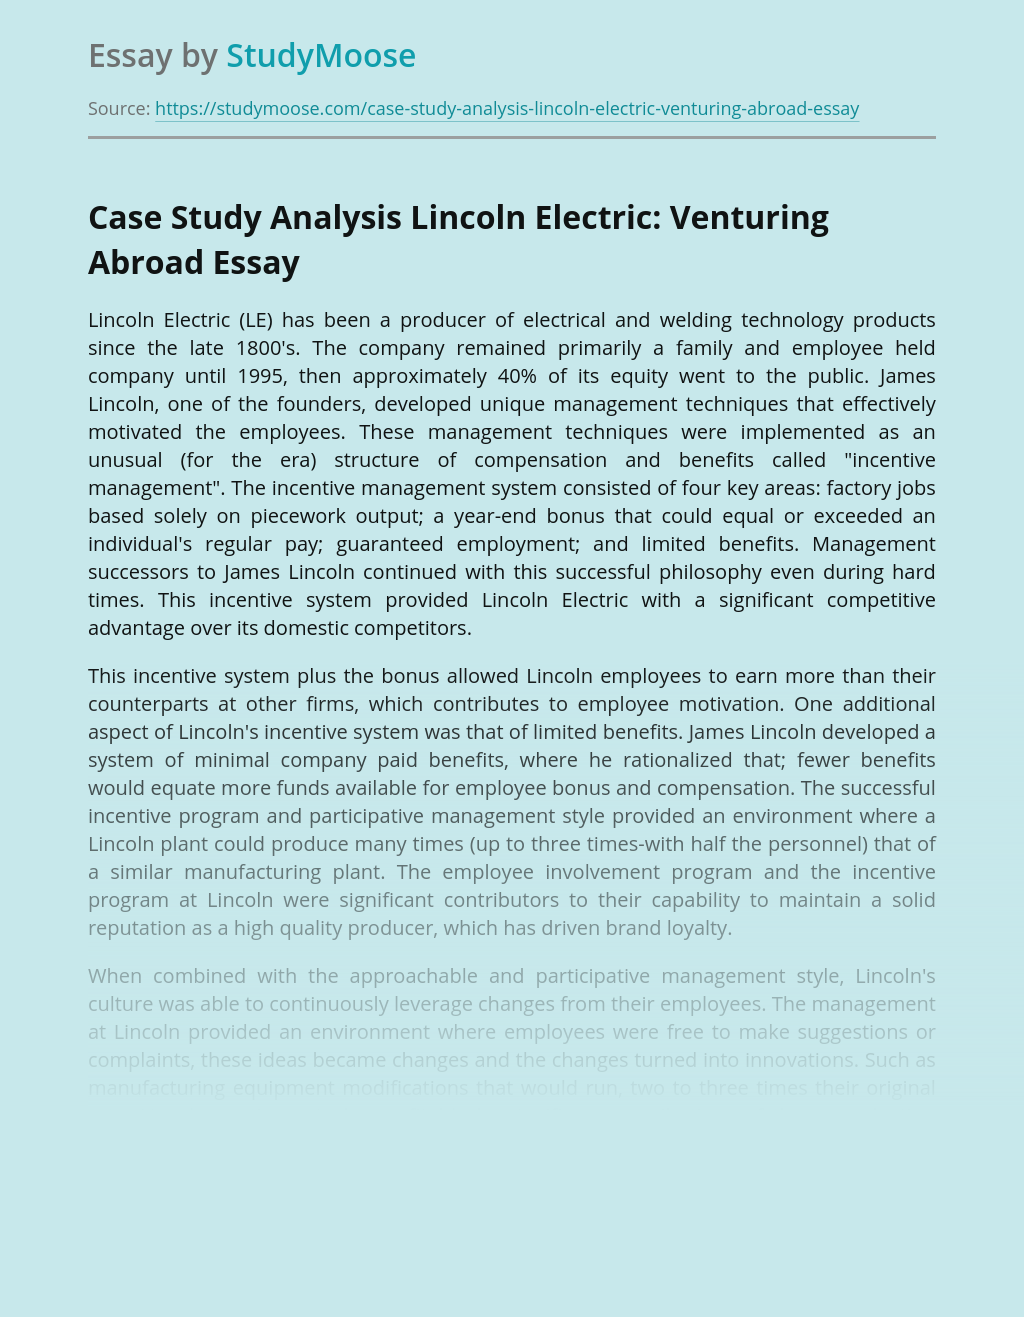 Case Study Analysis Lincoln Electric: Venturing Abroad